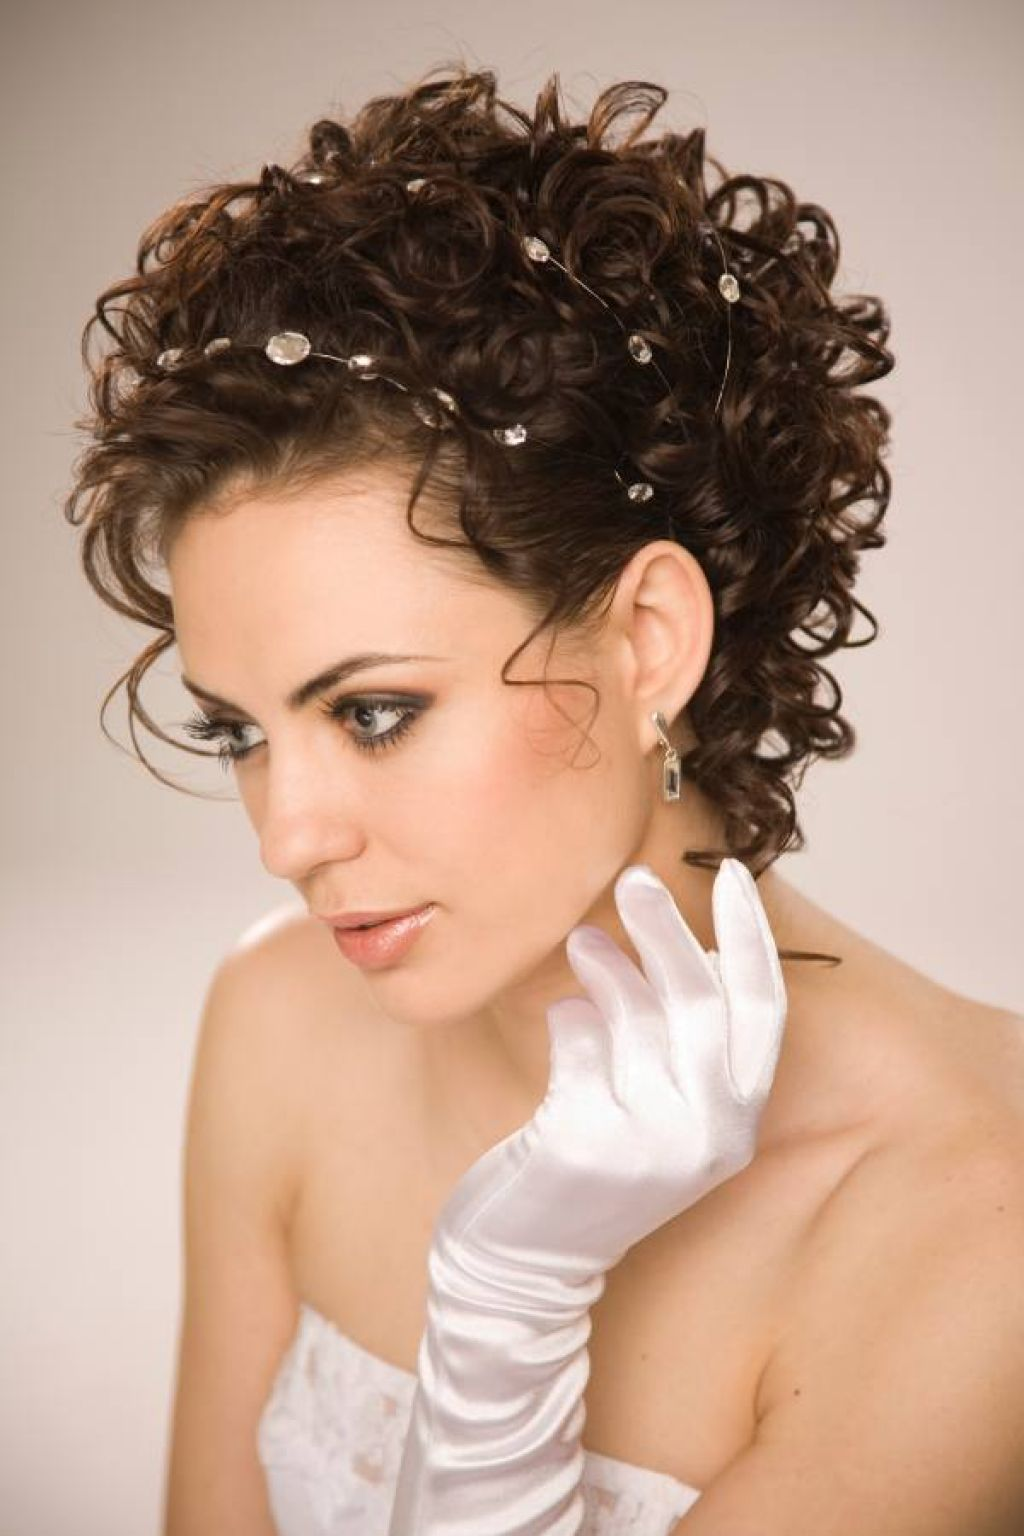 Elegant hair bands for curly hair solves the curly hair problem at